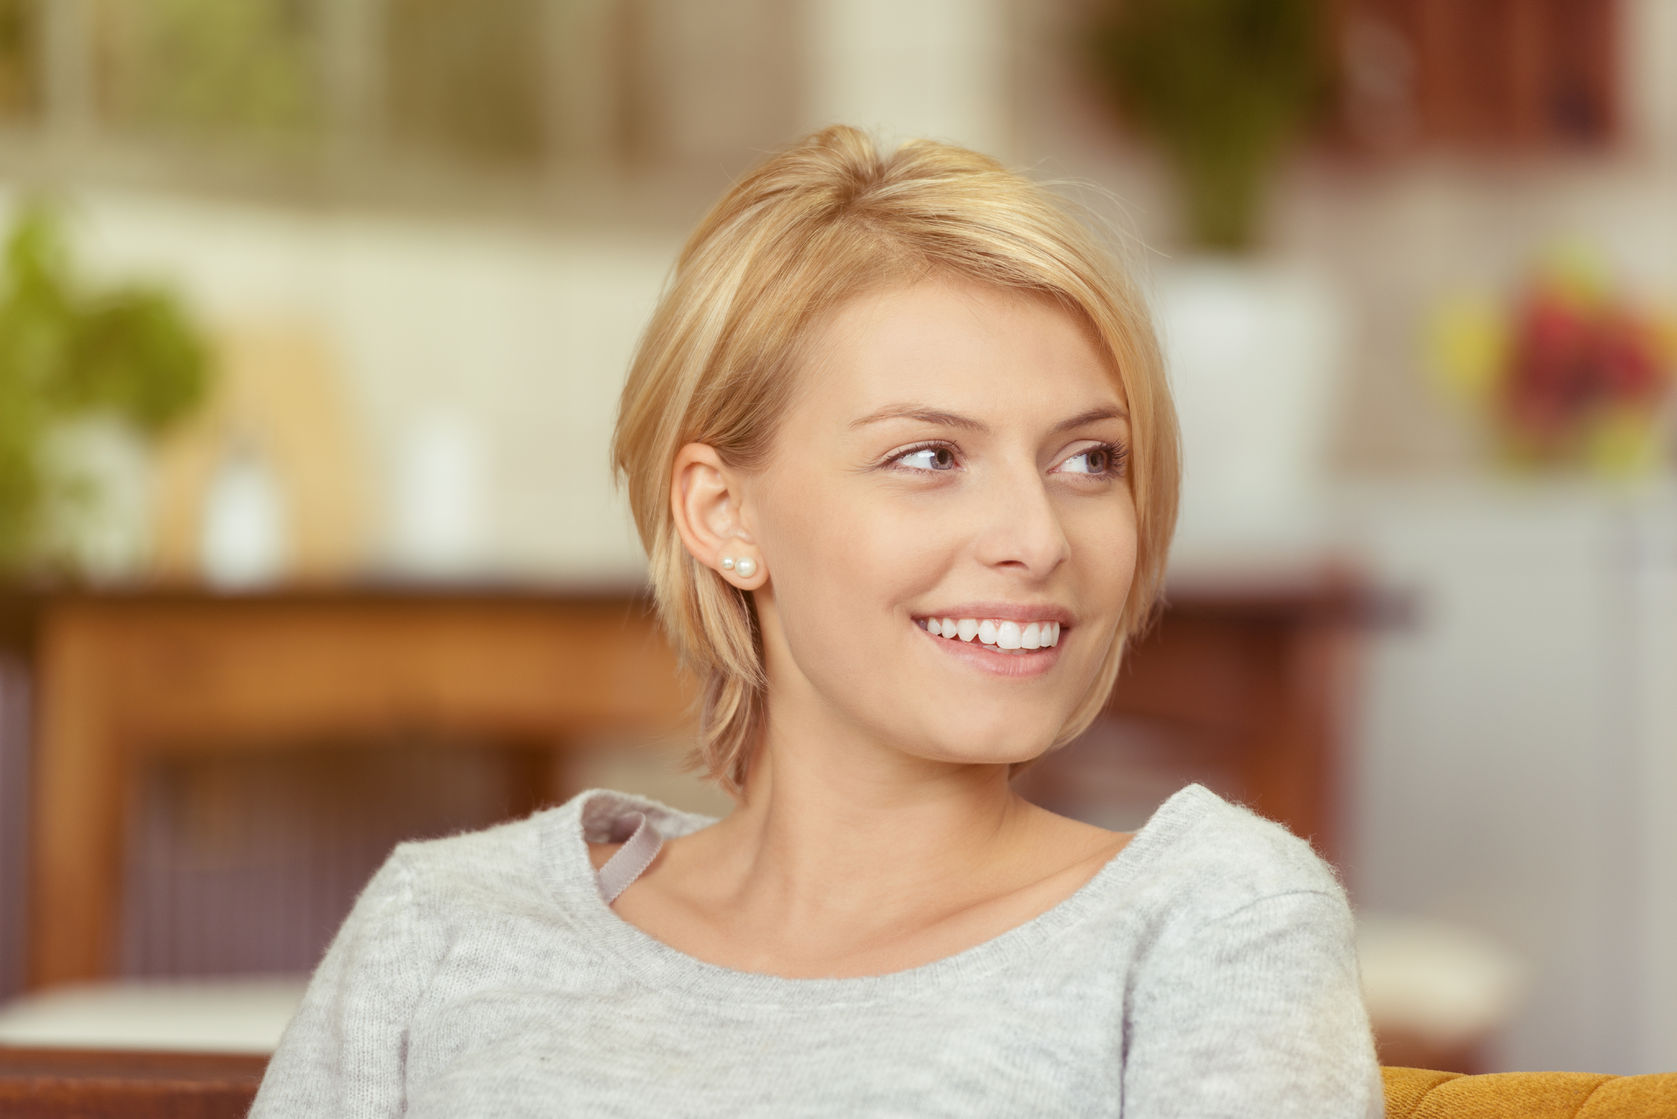 10 Must-Know Tips When Looking for Nose Surgery In NYC